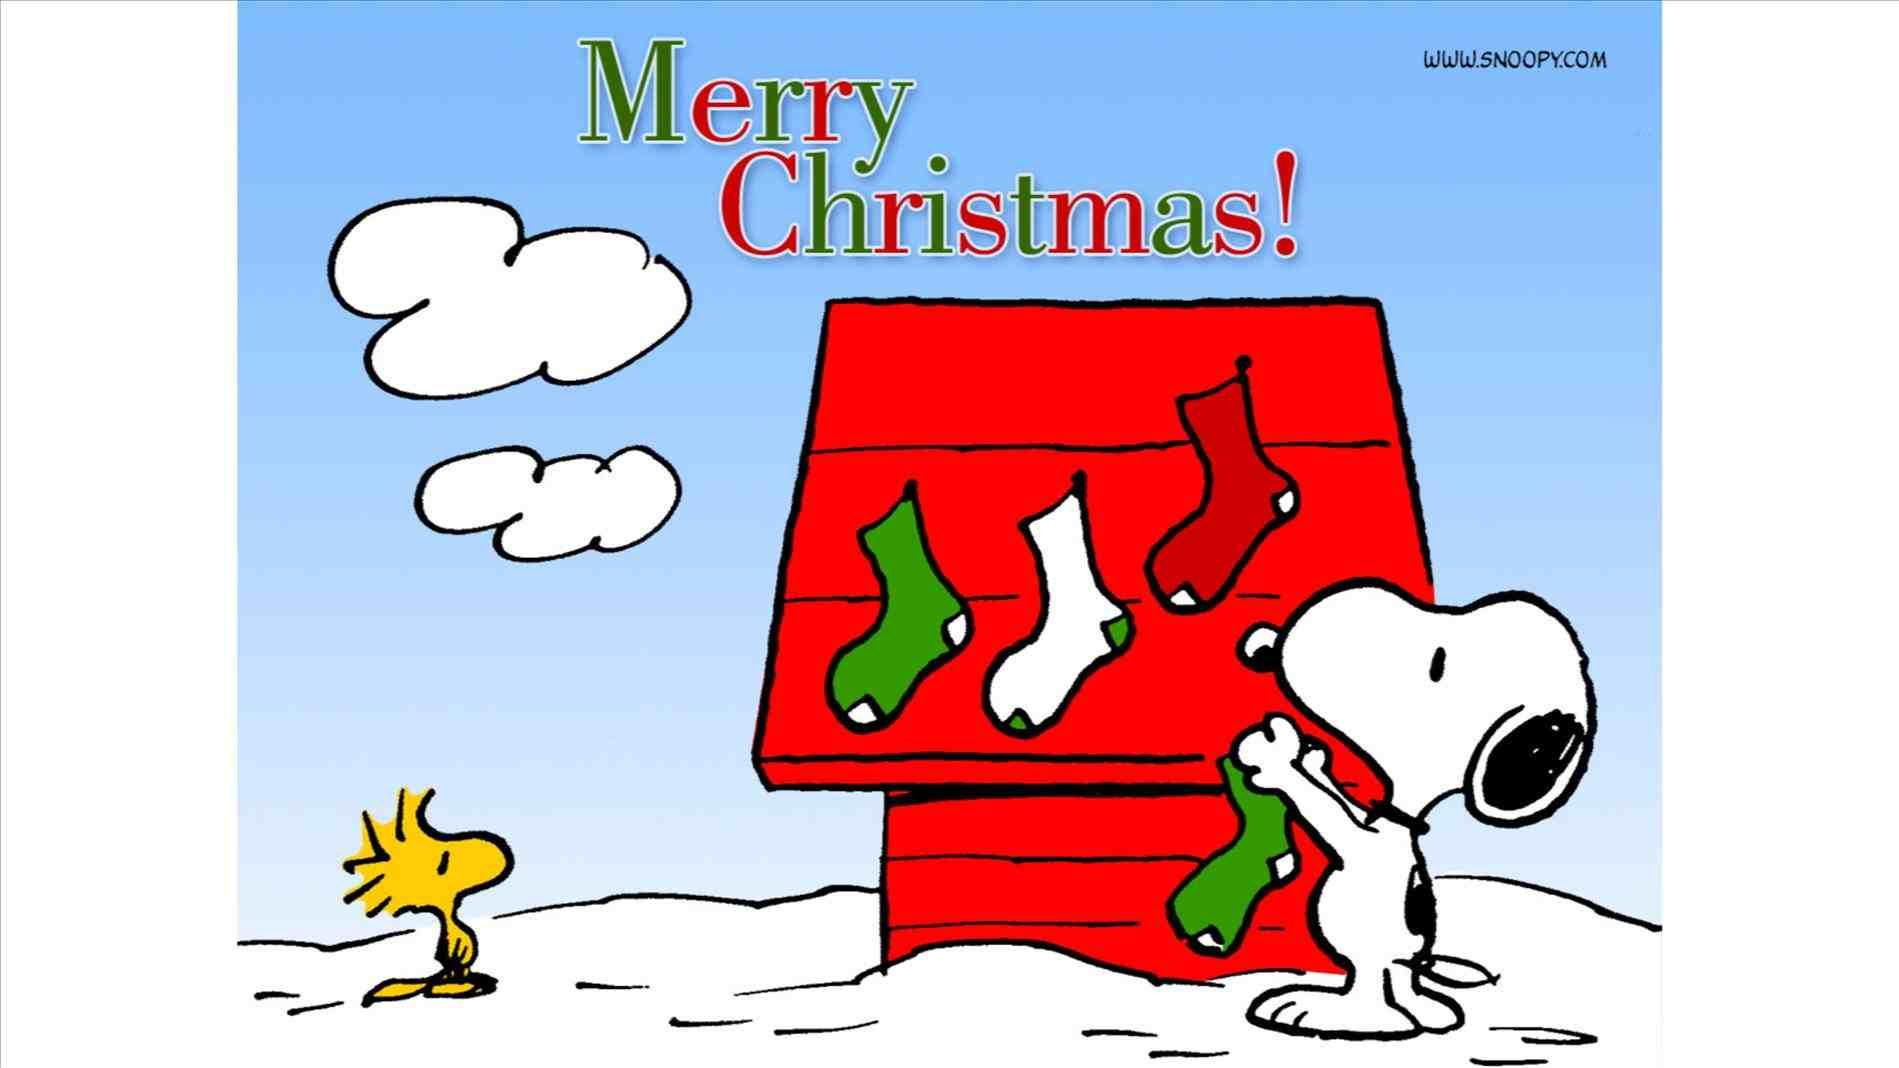 new merry christmas snoopy wallpaper at temasisteminet - Merry Christmas Snoopy